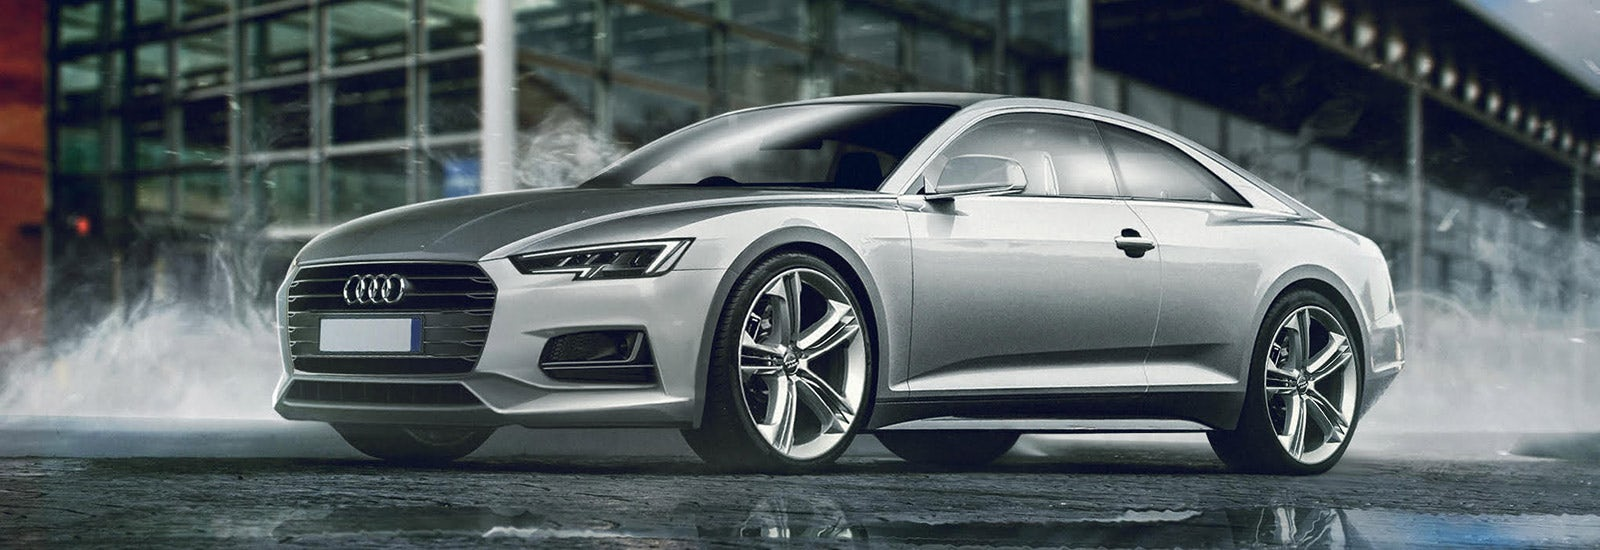 New Audi A Price Specs And Release Date Carwow - Audi a 9